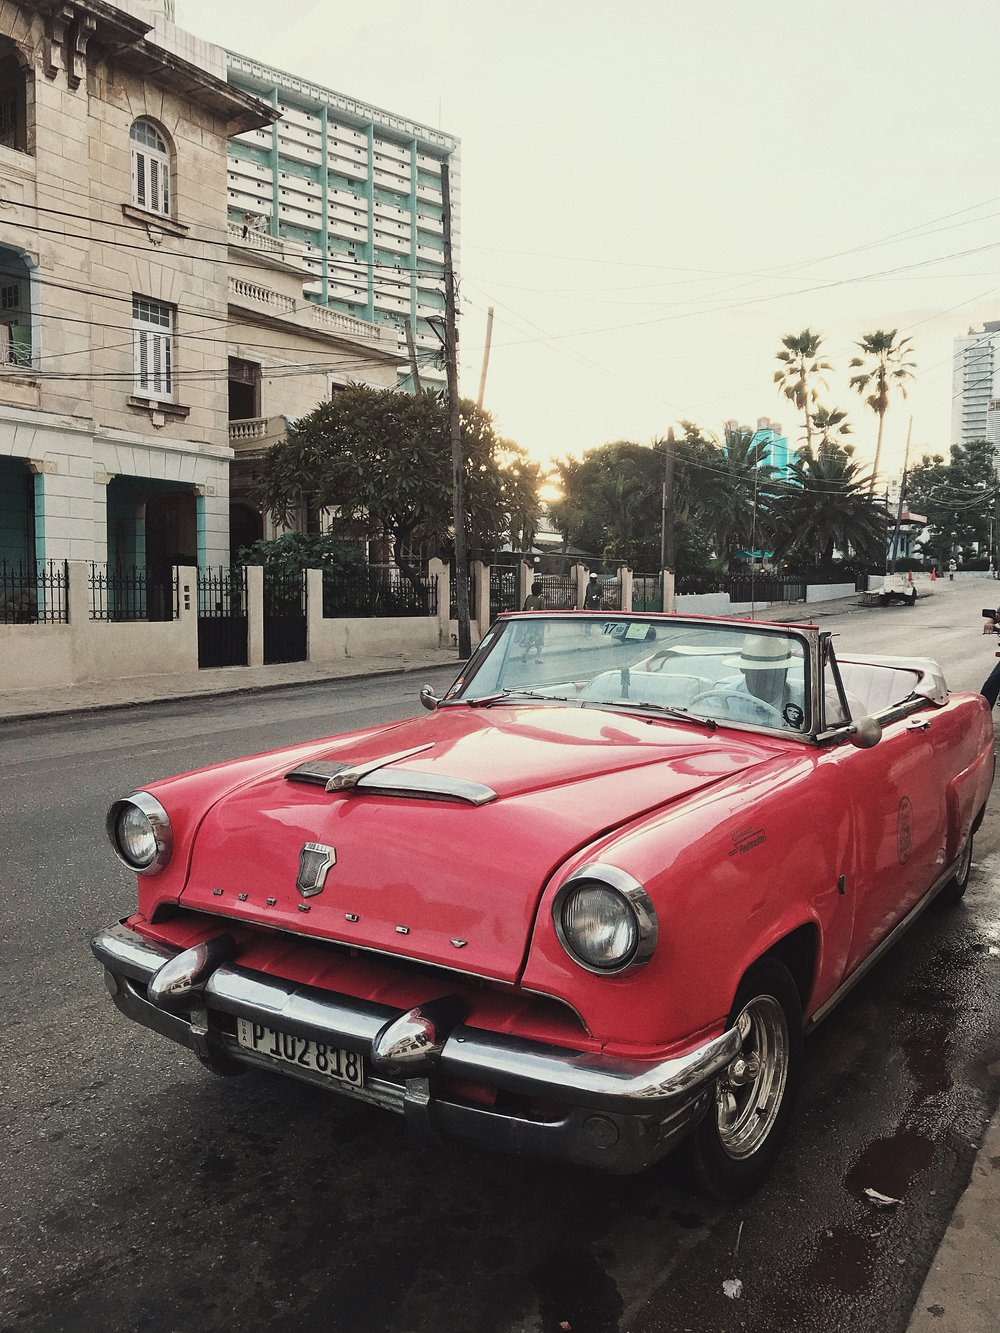 A ride in a vintage car is a must in Havana